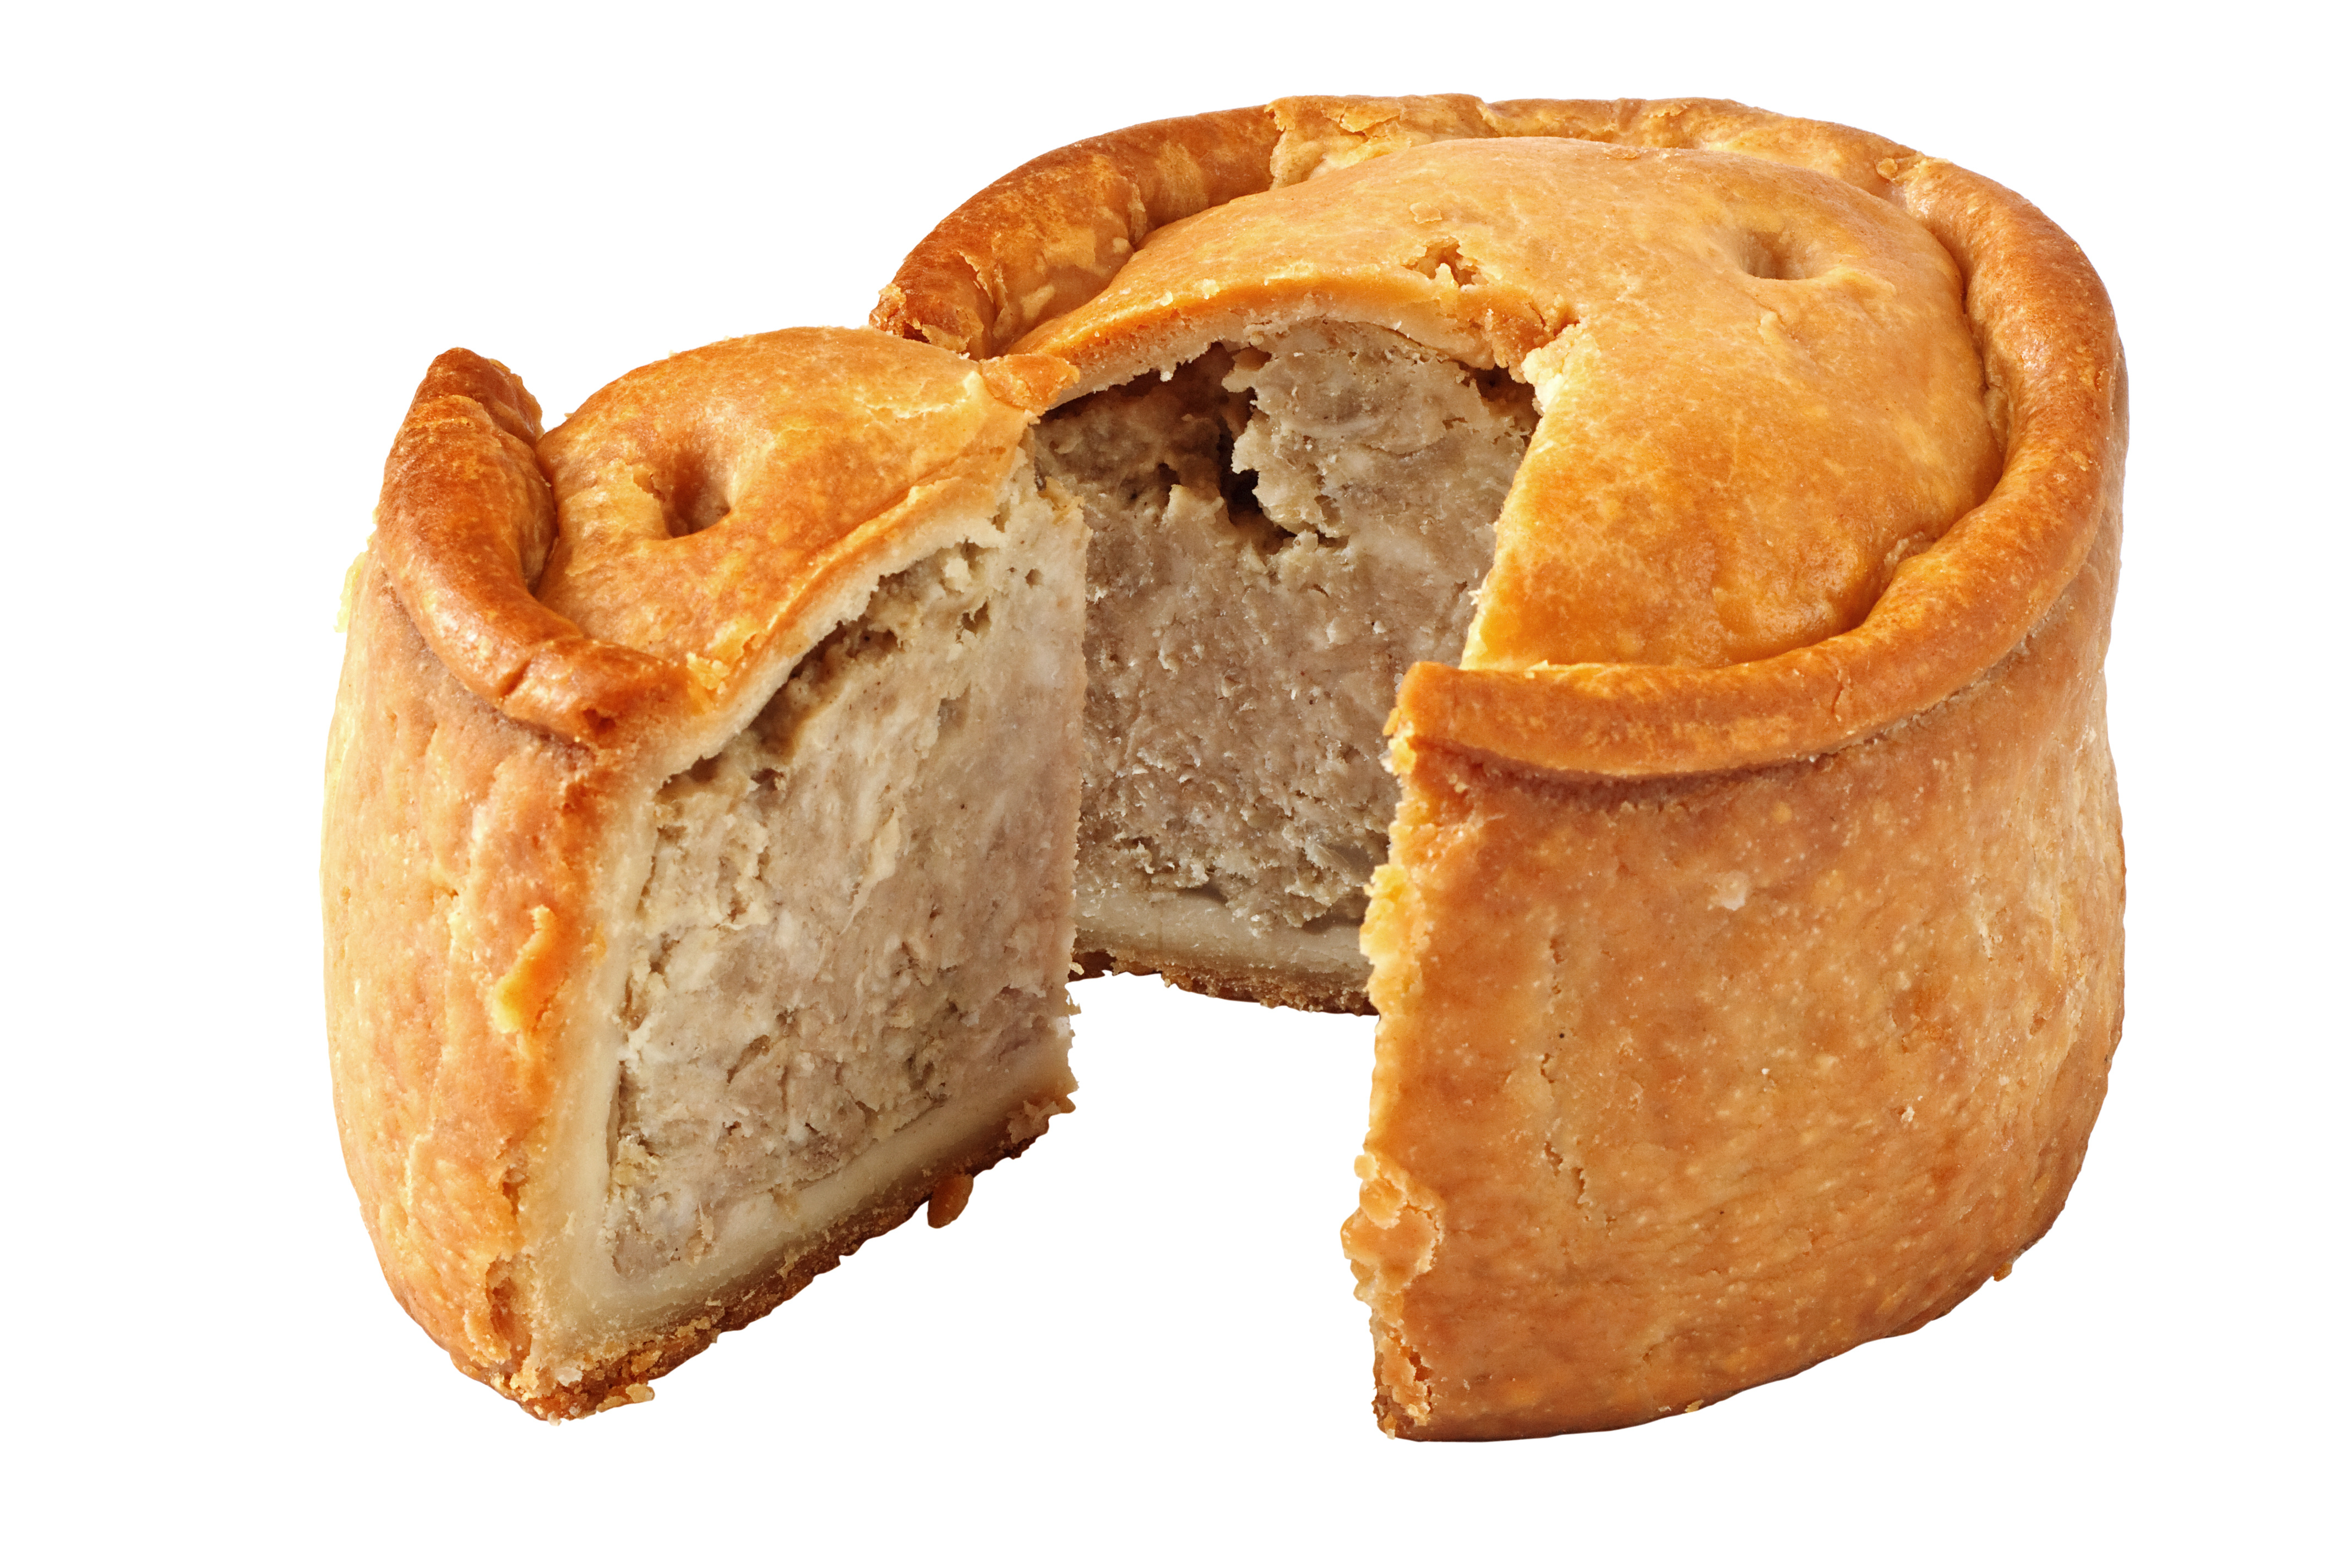 Pork Pie Png - Oops! Iceland tests meat pies for horse meat and finds...no meat ...